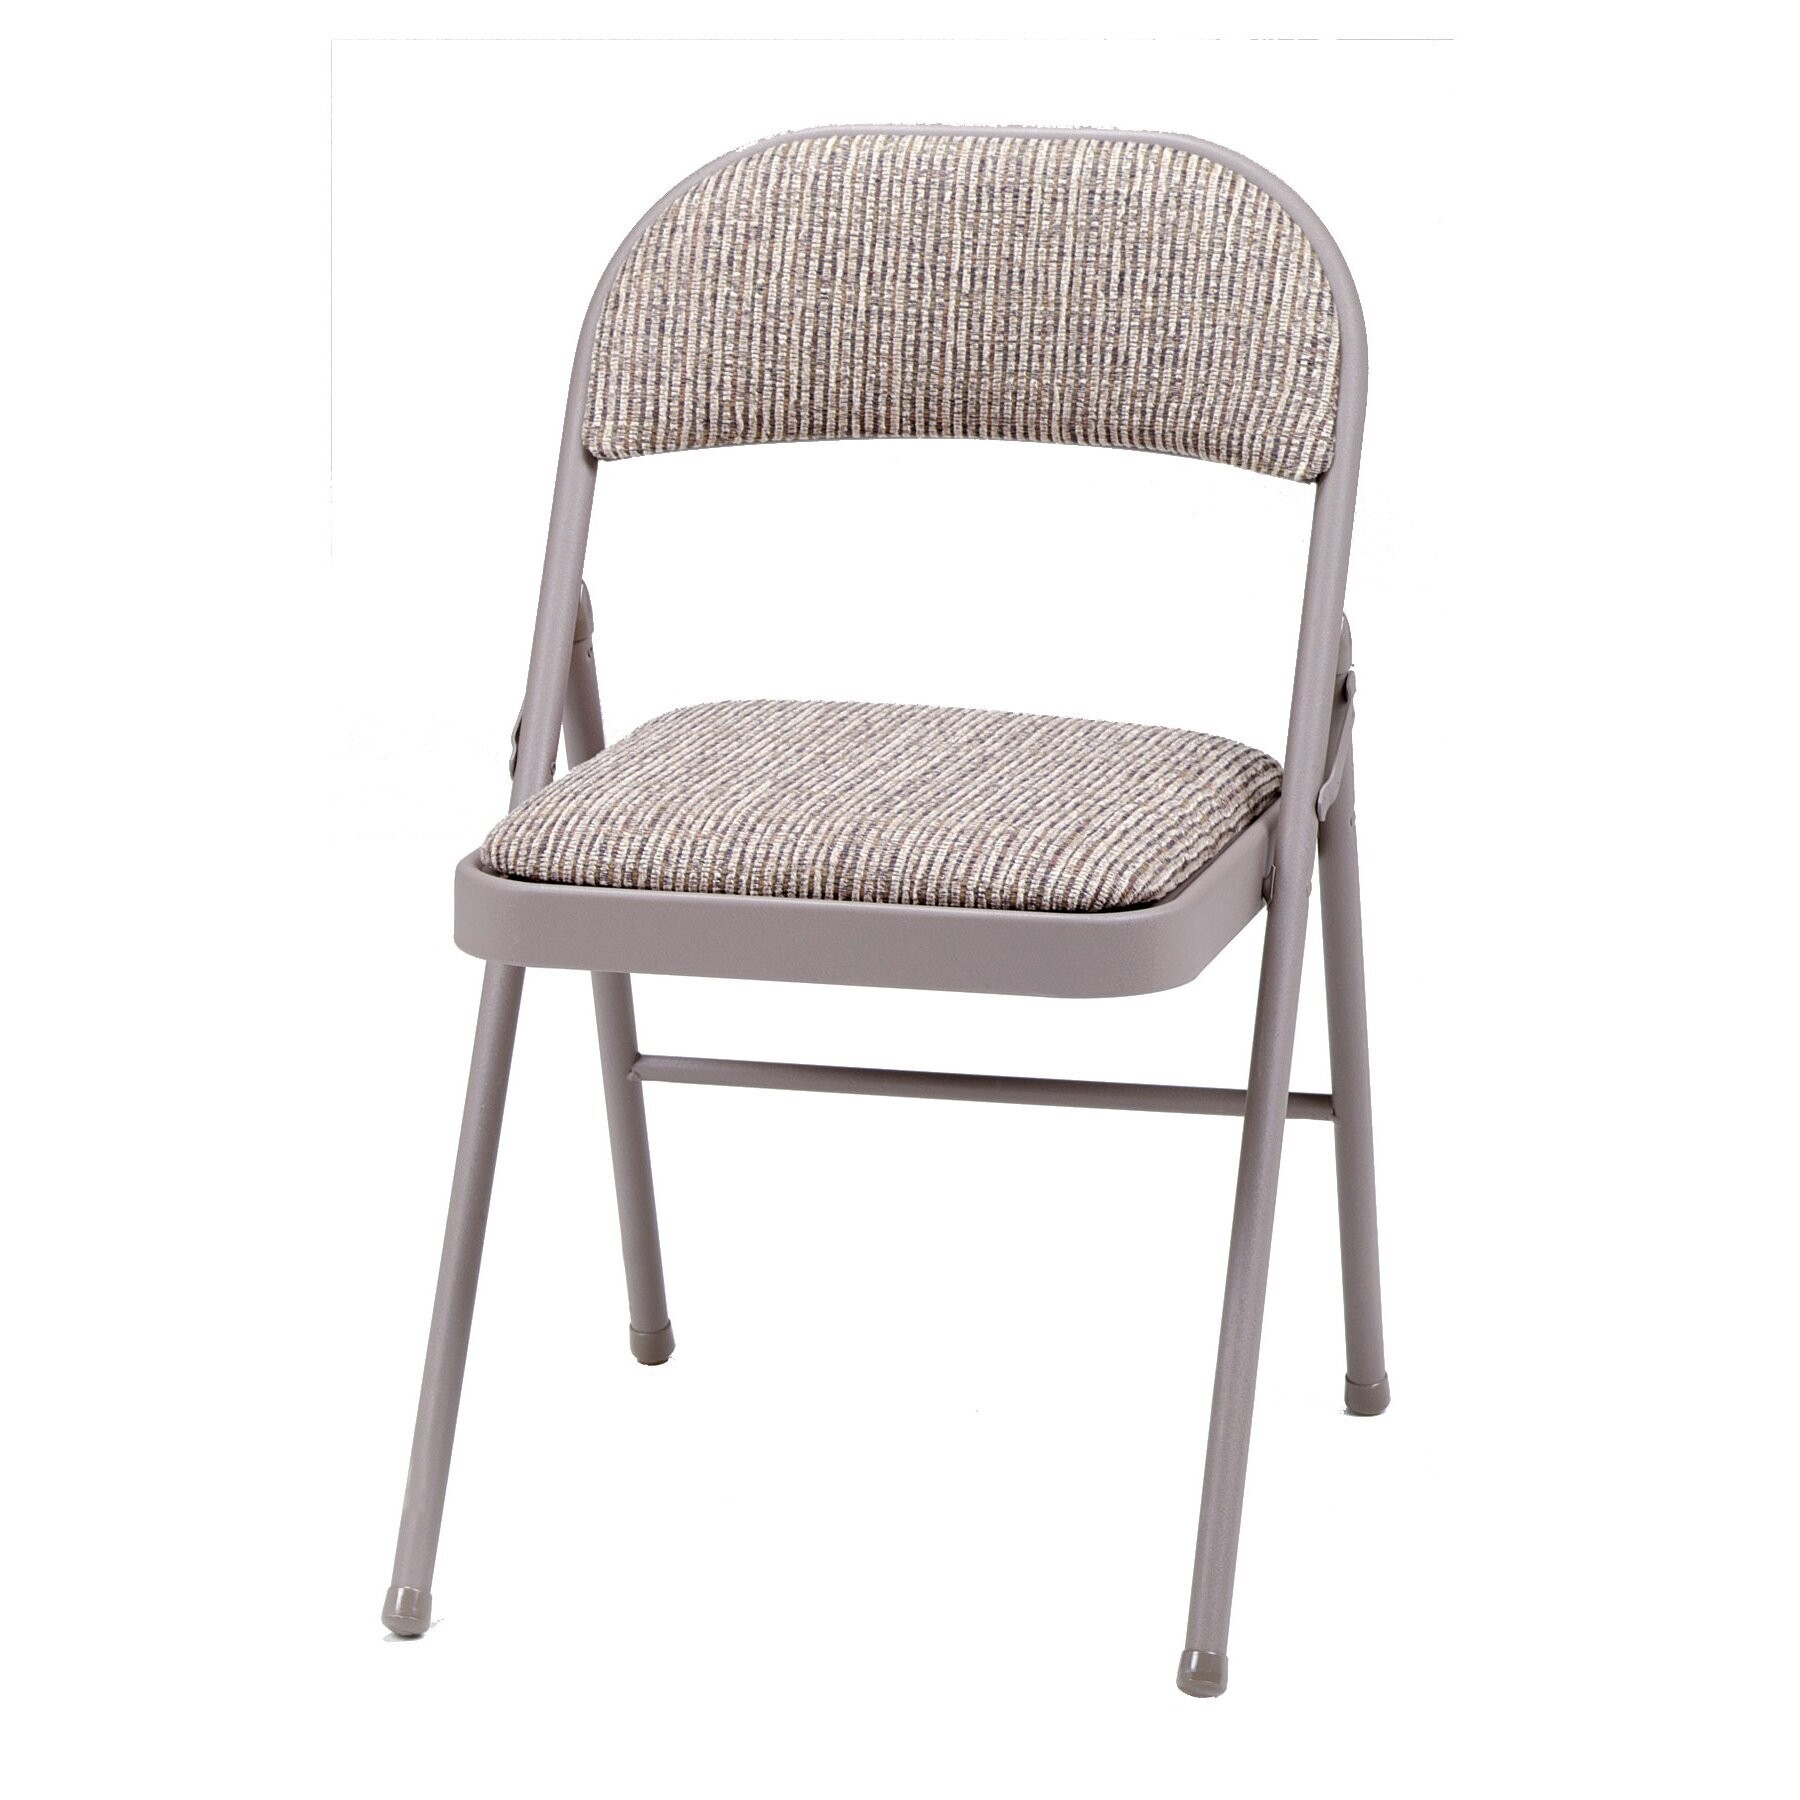 How To Choose A Folding Chair